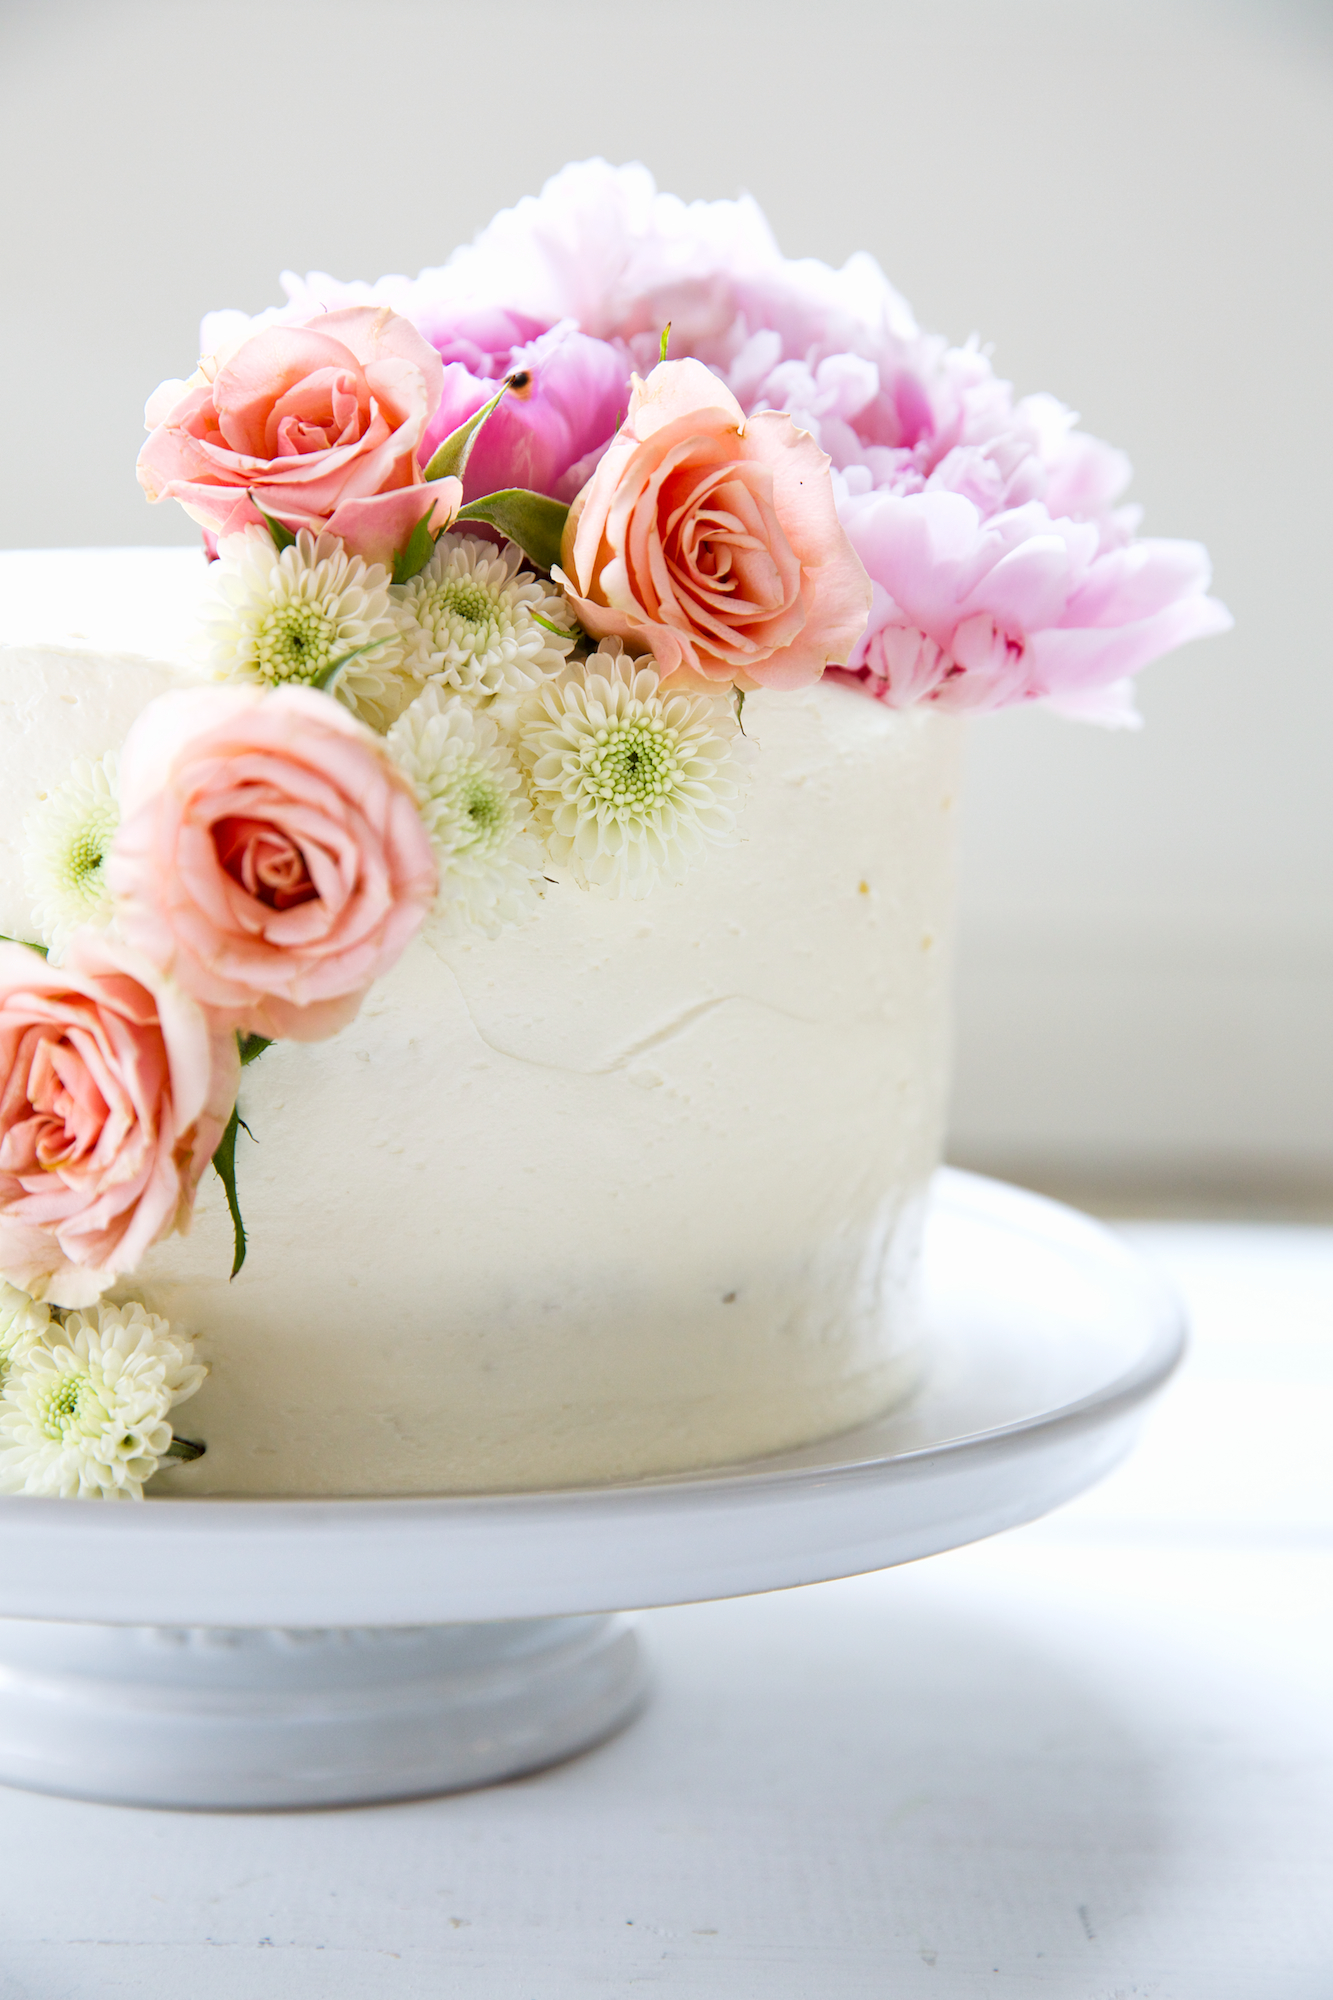 host to frost a birthday cake